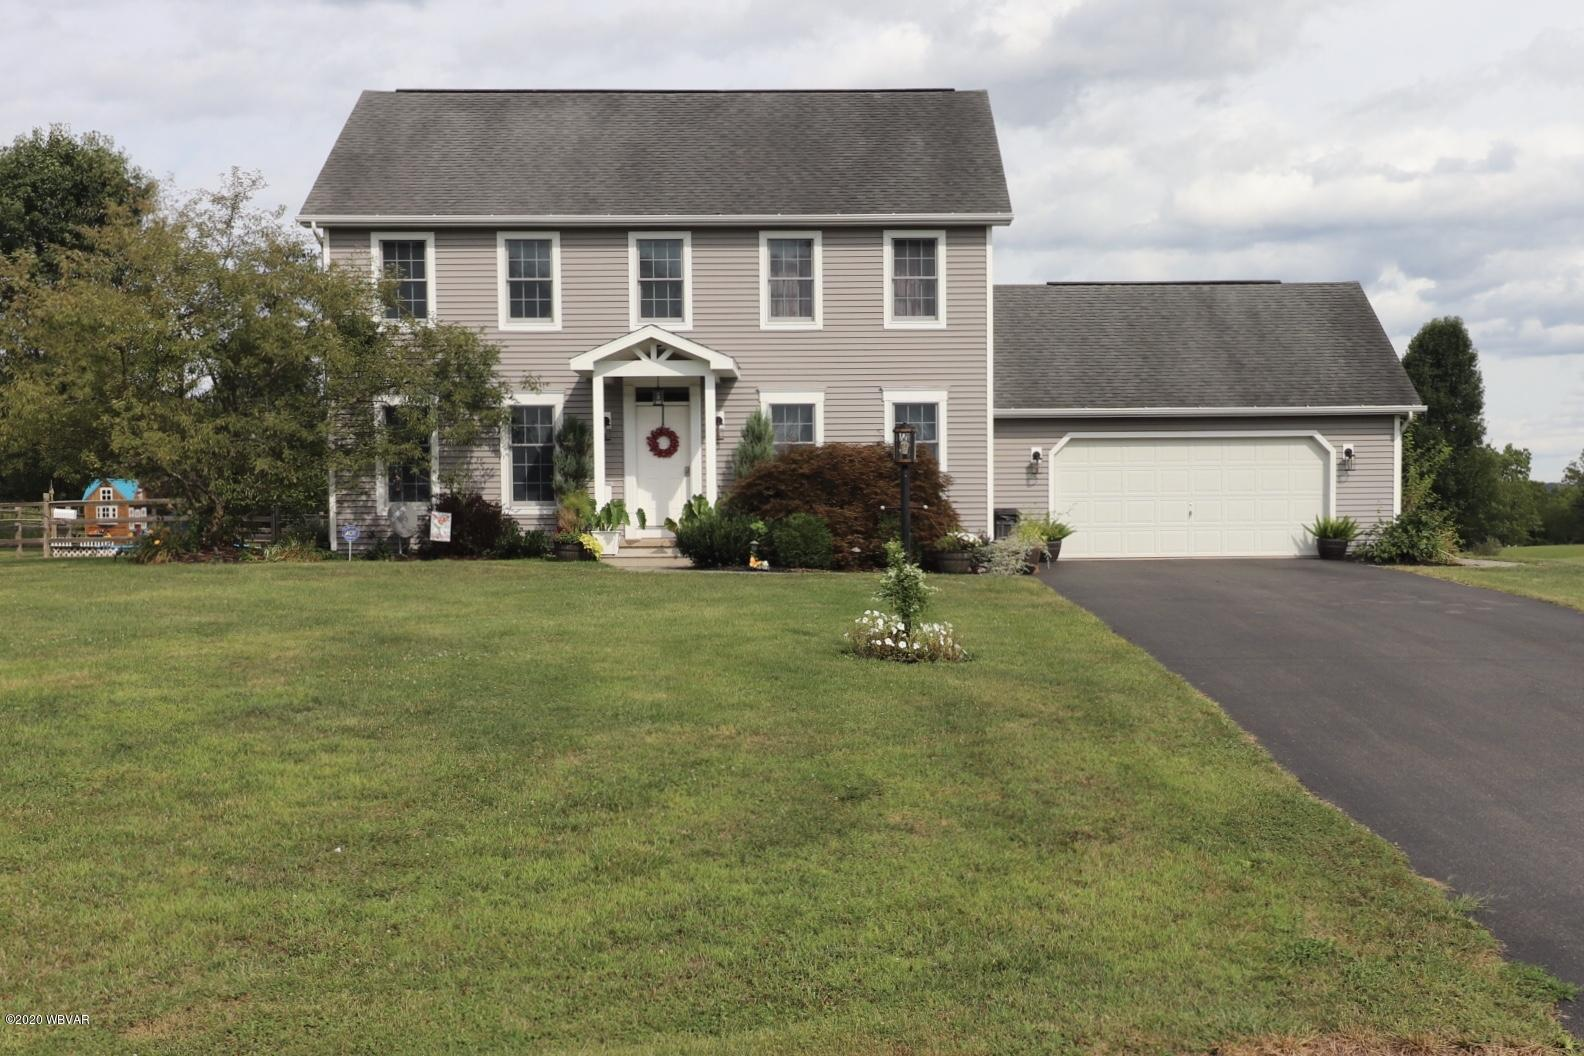 1457 YEAGLE ROAD, Montoursville, PA 17754, 3 Bedrooms Bedrooms, ,3 BathroomsBathrooms,Residential,For sale,YEAGLE,WB-90951